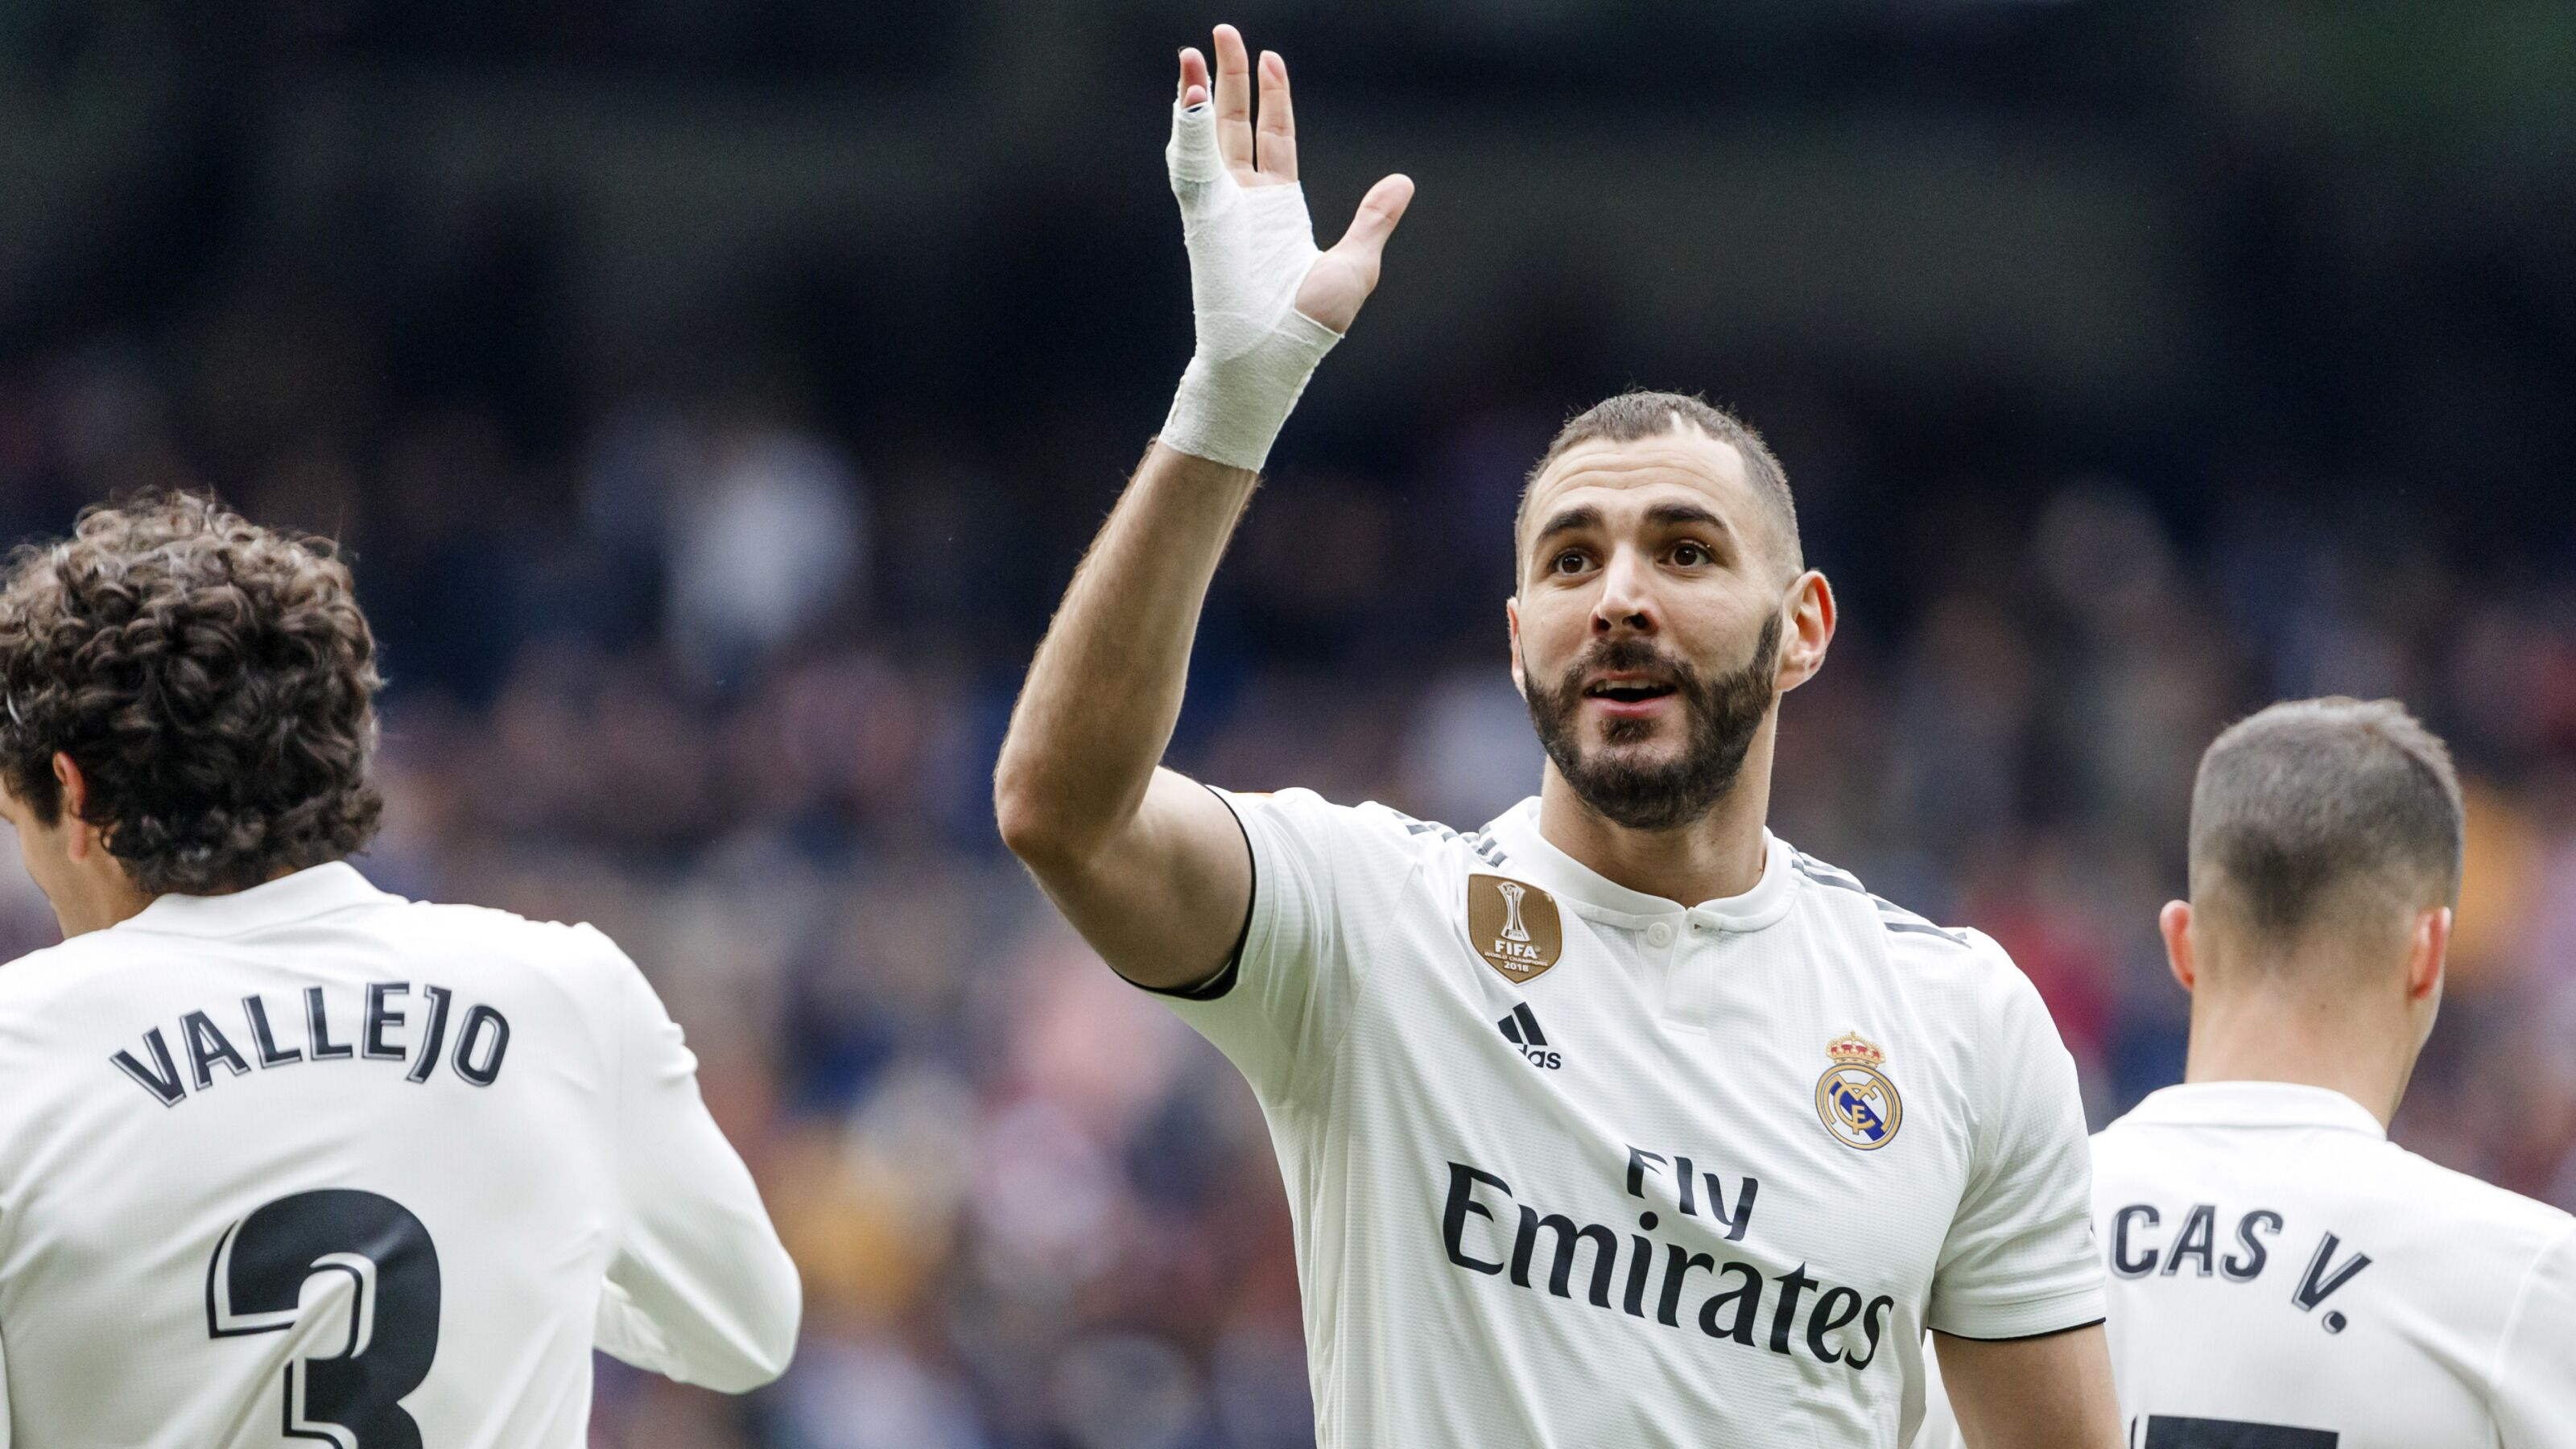 Real Madrid: Predicting 2019-2020 goals and assists